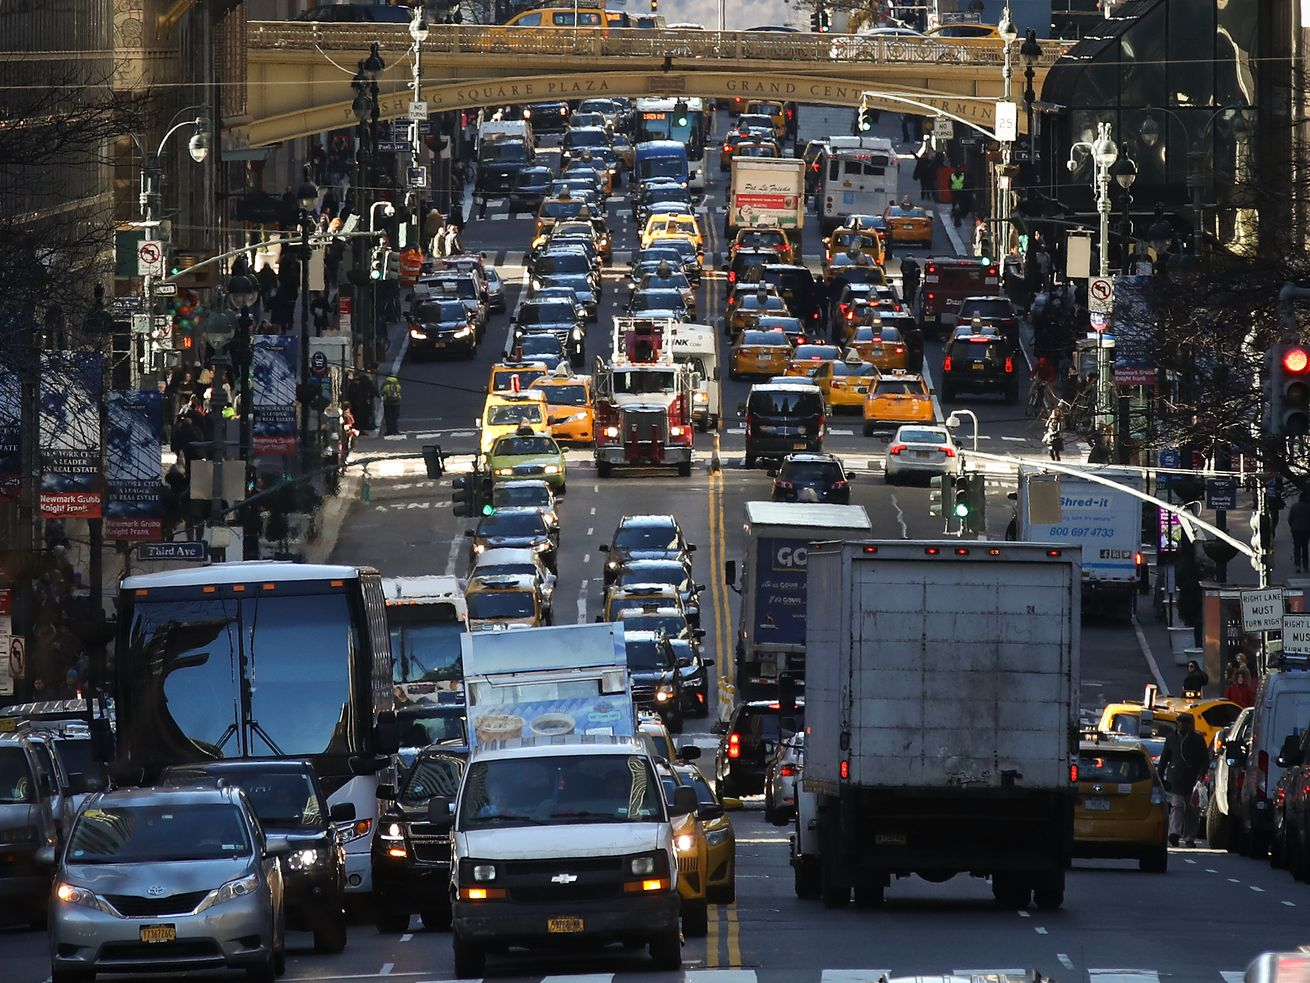 A congested road in Manhattan packed with cars, trucks, and buses bumper-to-bumper.